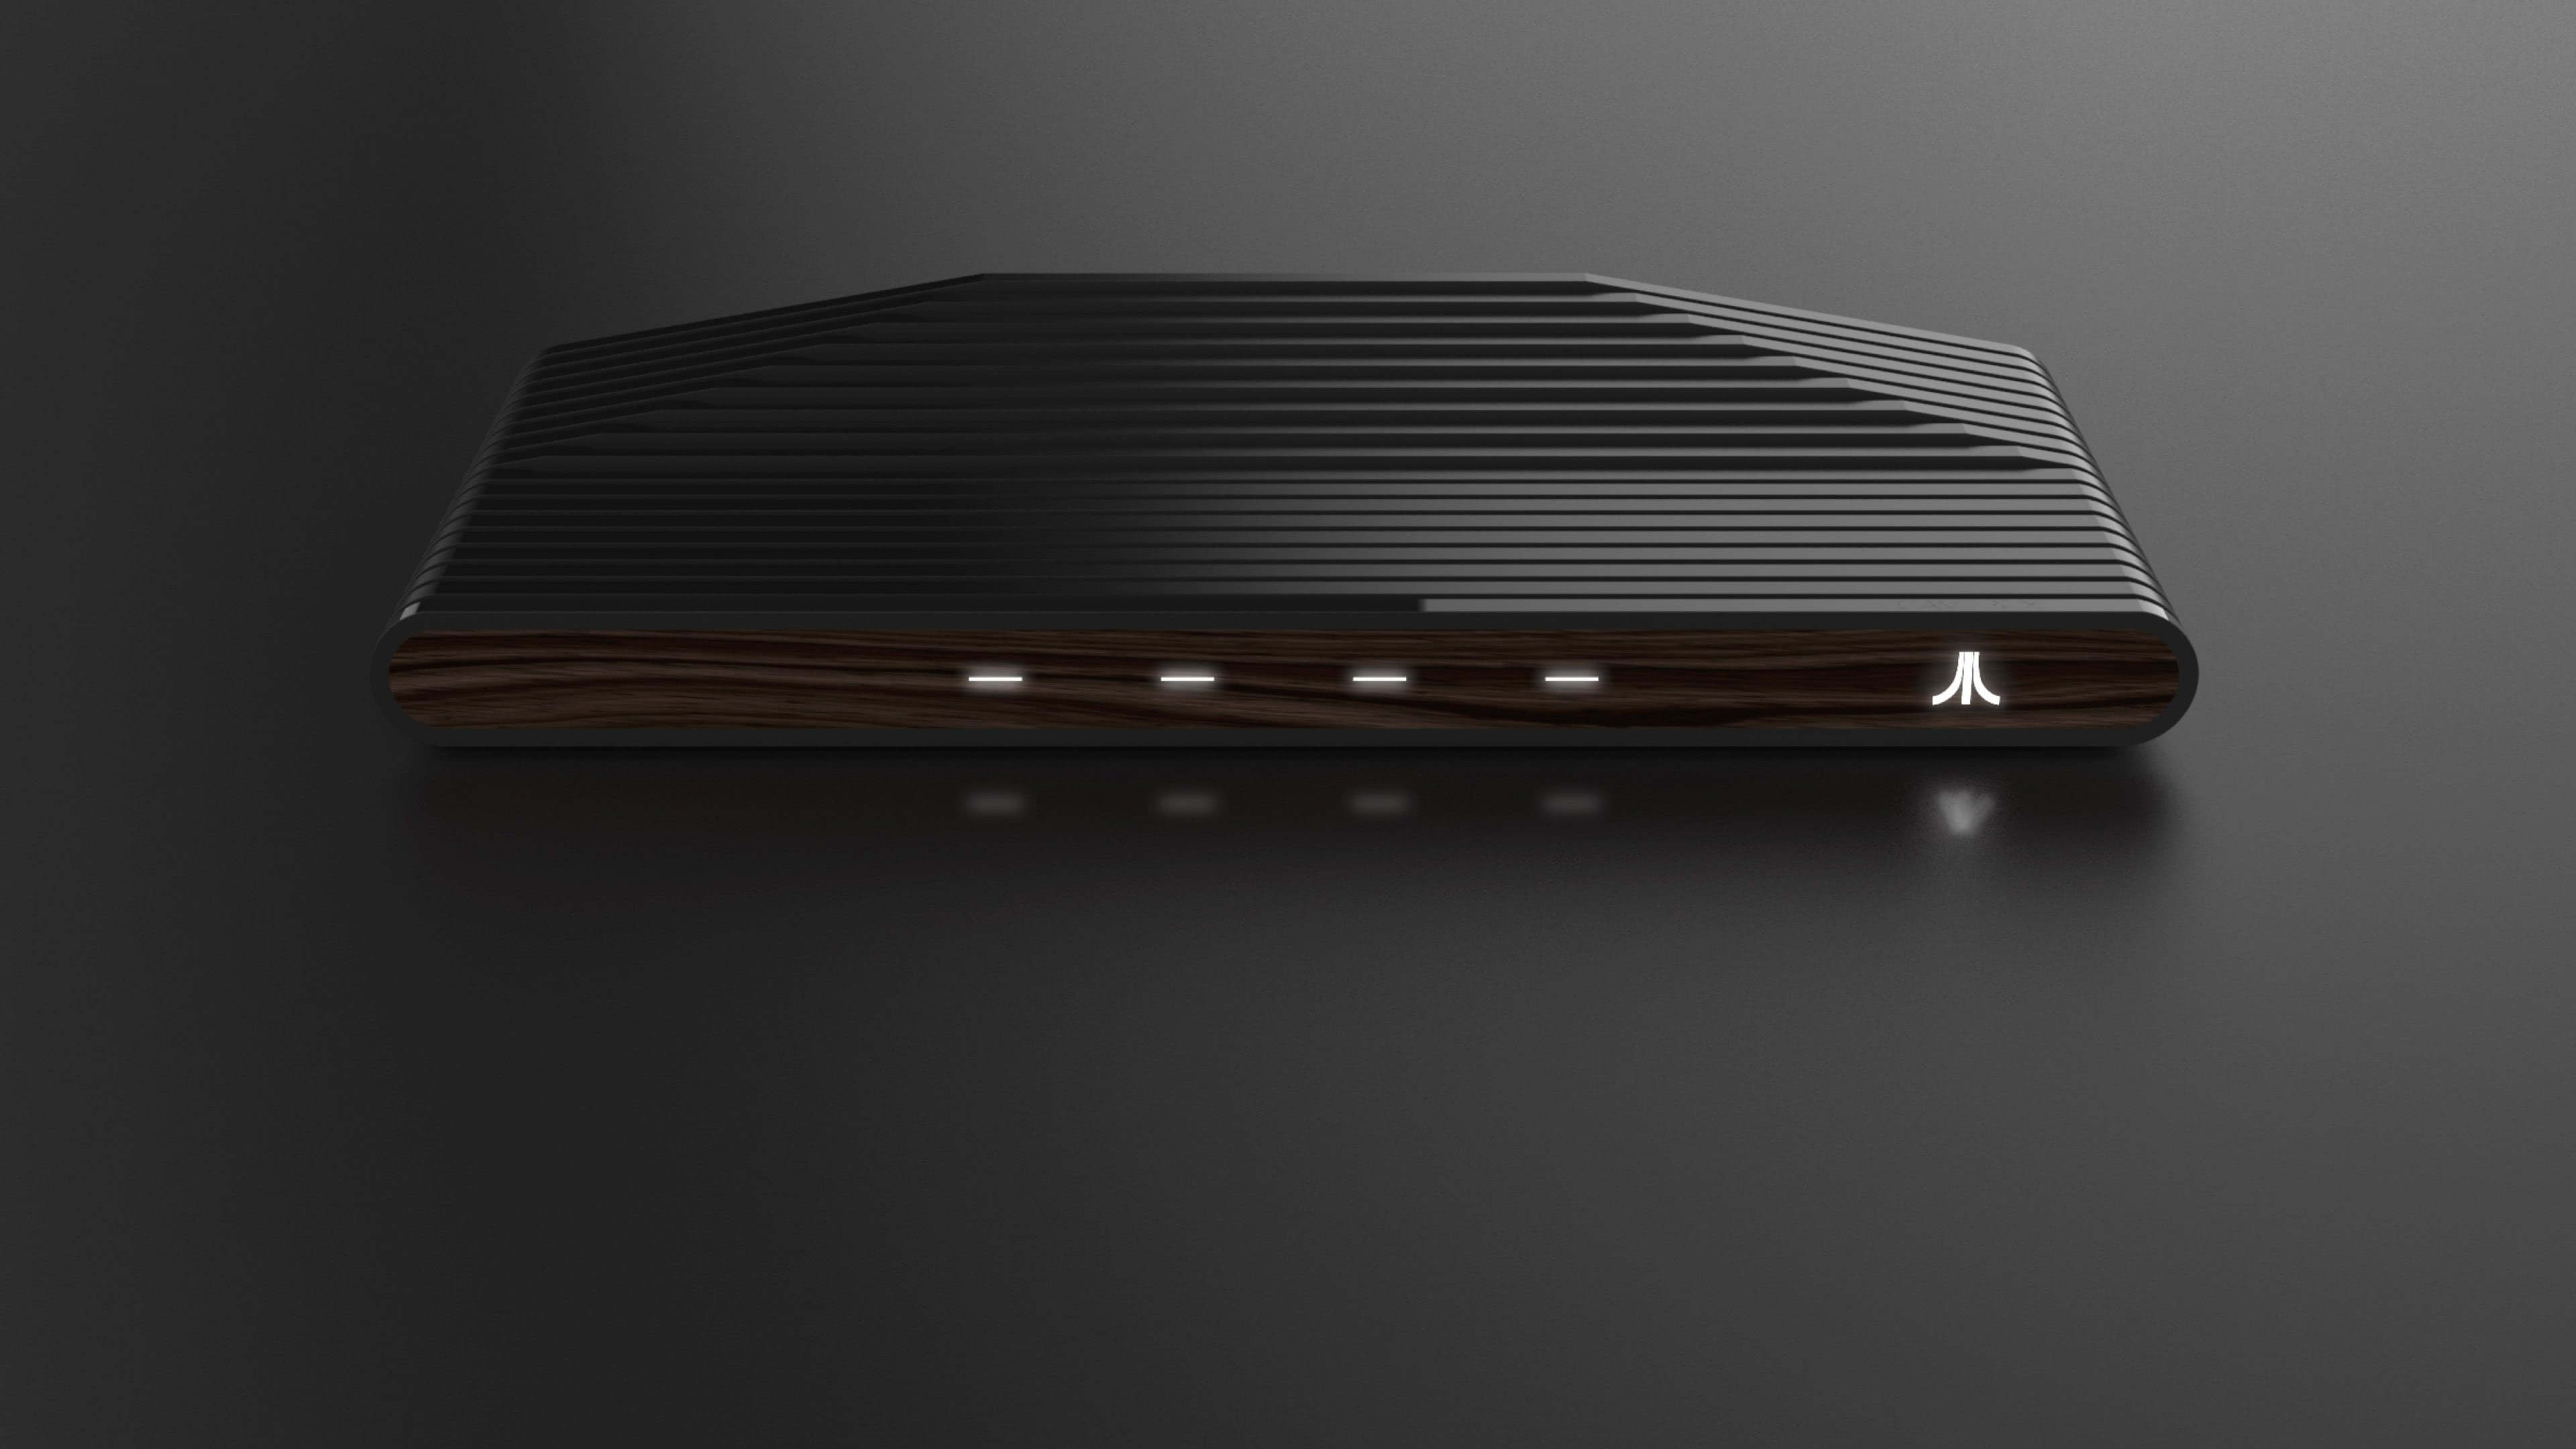 Ataribox Retro Game Console Uhd 4k Wallpaper Pixelz Cc